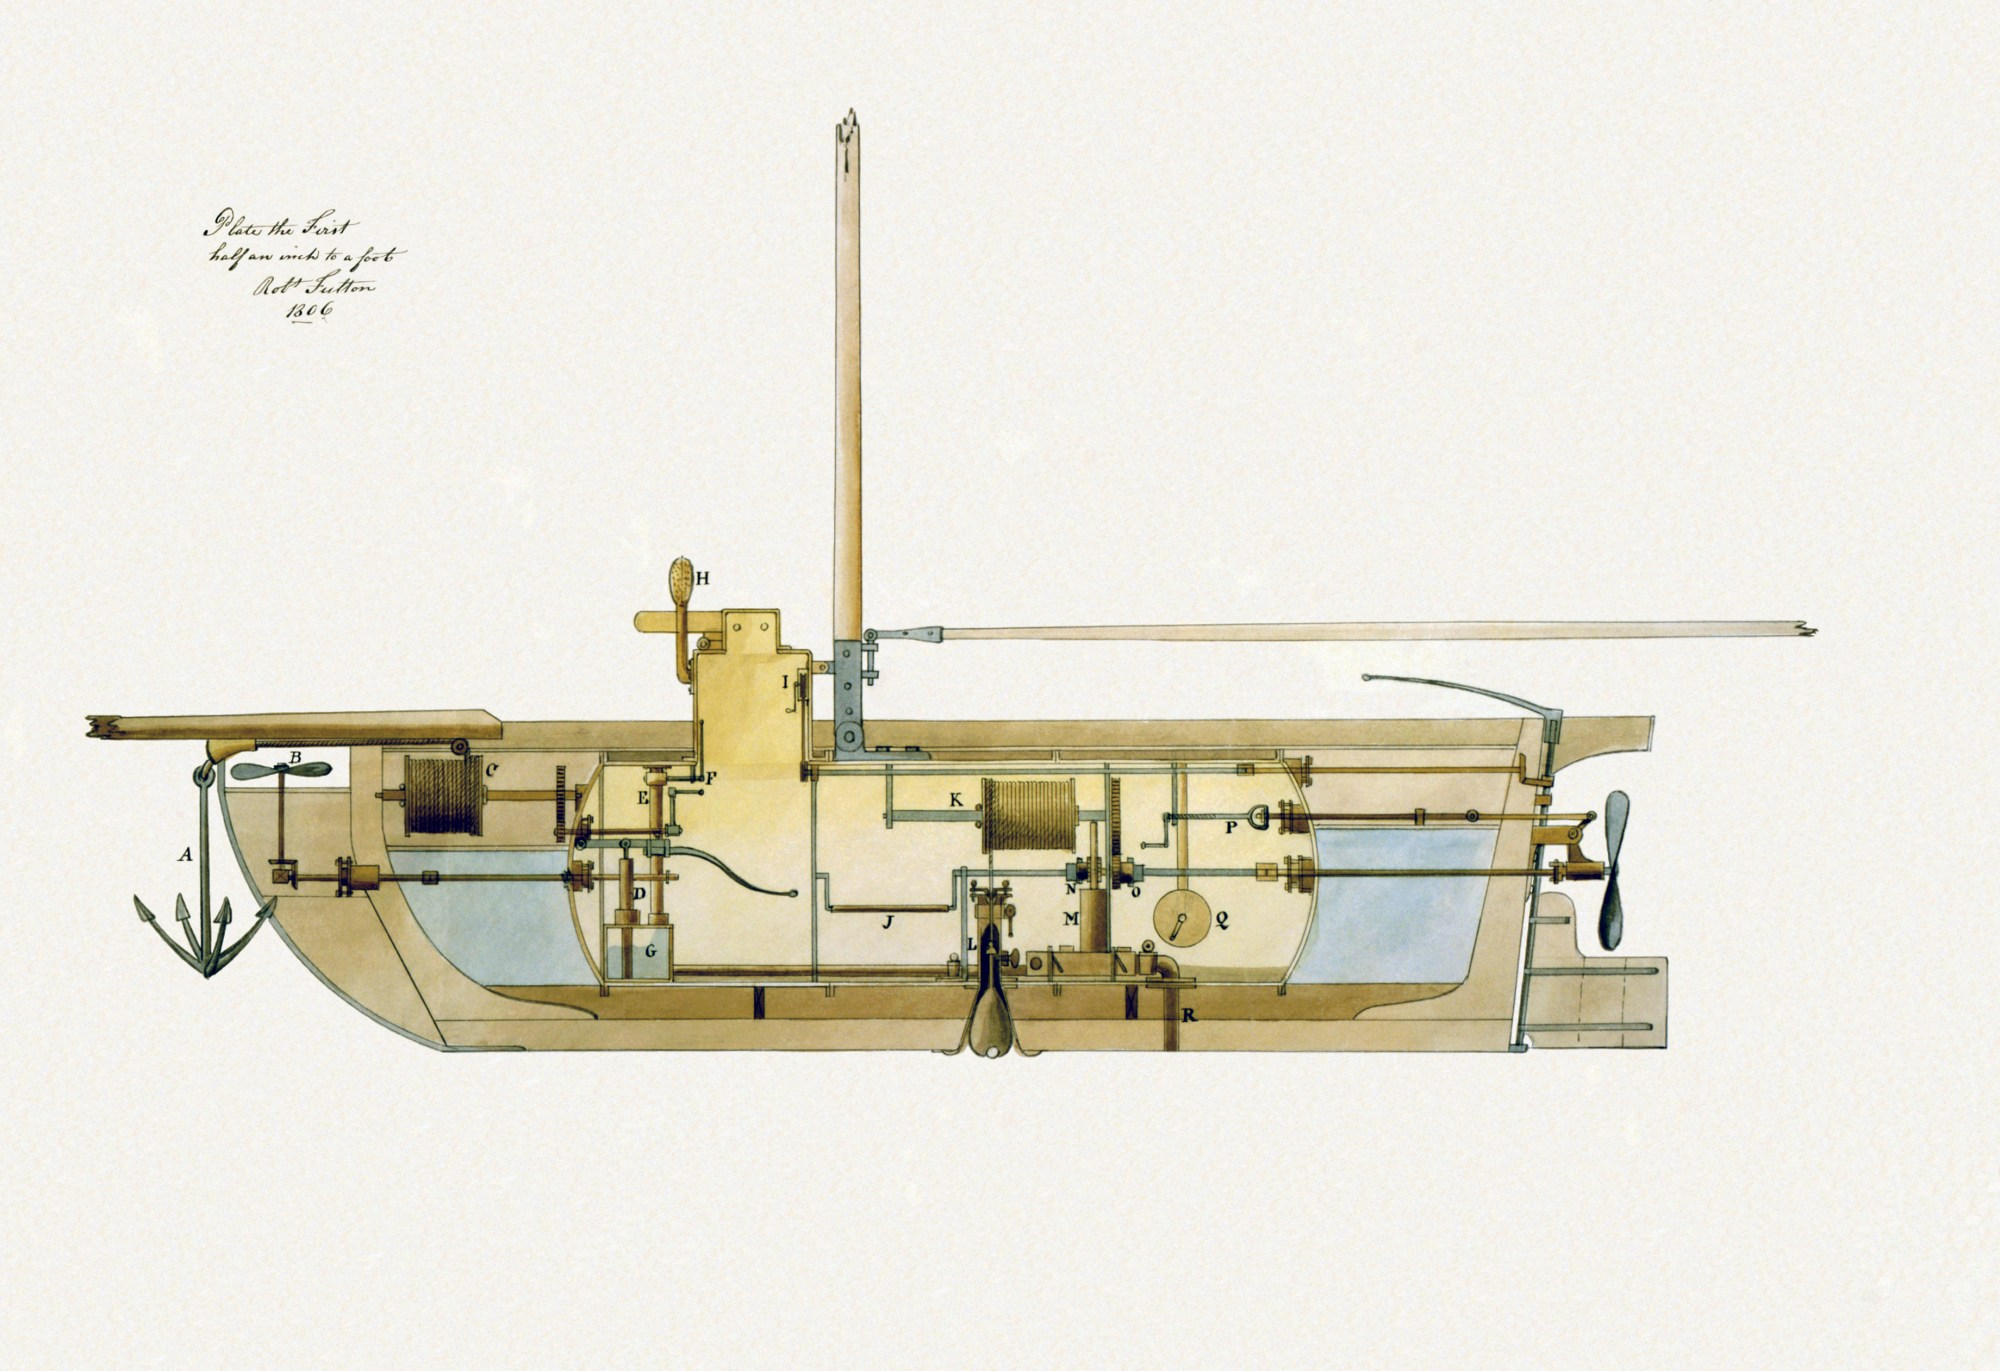 hight resolution of an 1806 submarine design by robert fulton